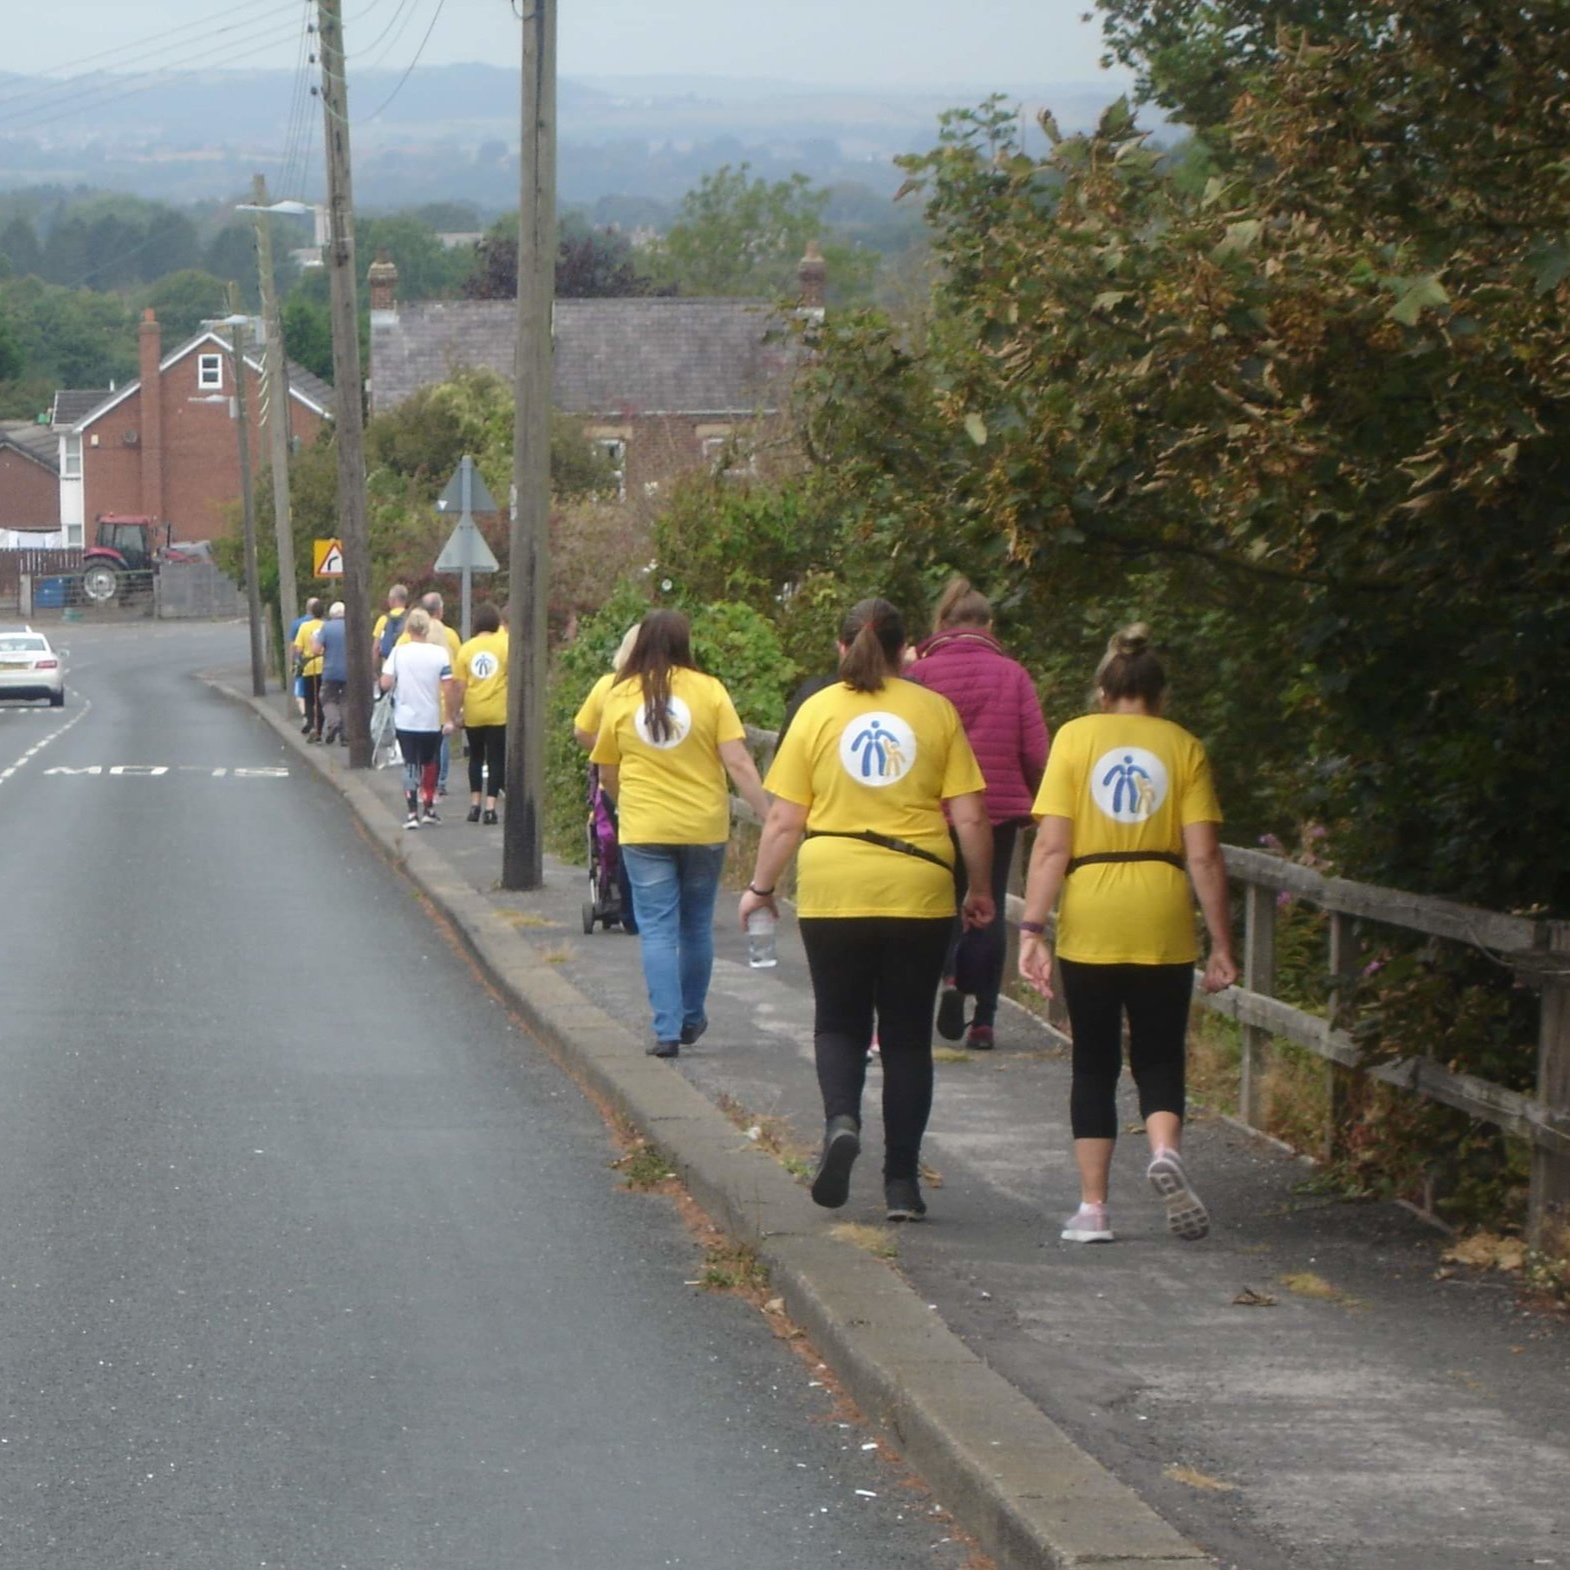 The team of 19 walked for 5.9 miles, raising nearly £1,200